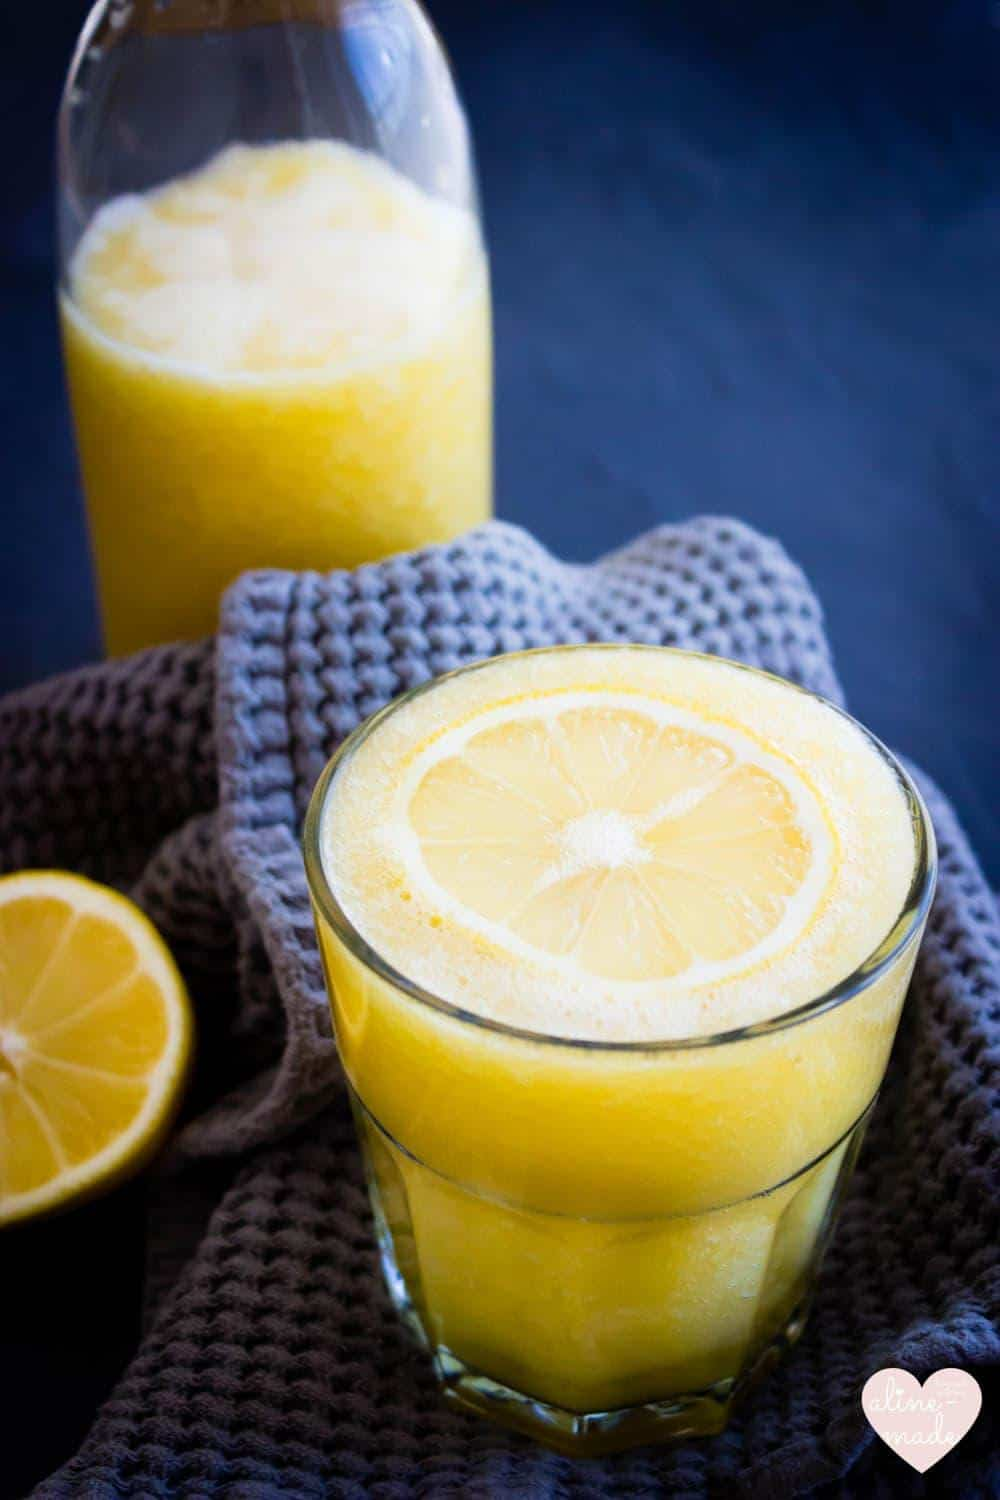 Simply Mango Lemonade in bright yellow topped with a lemon slice in